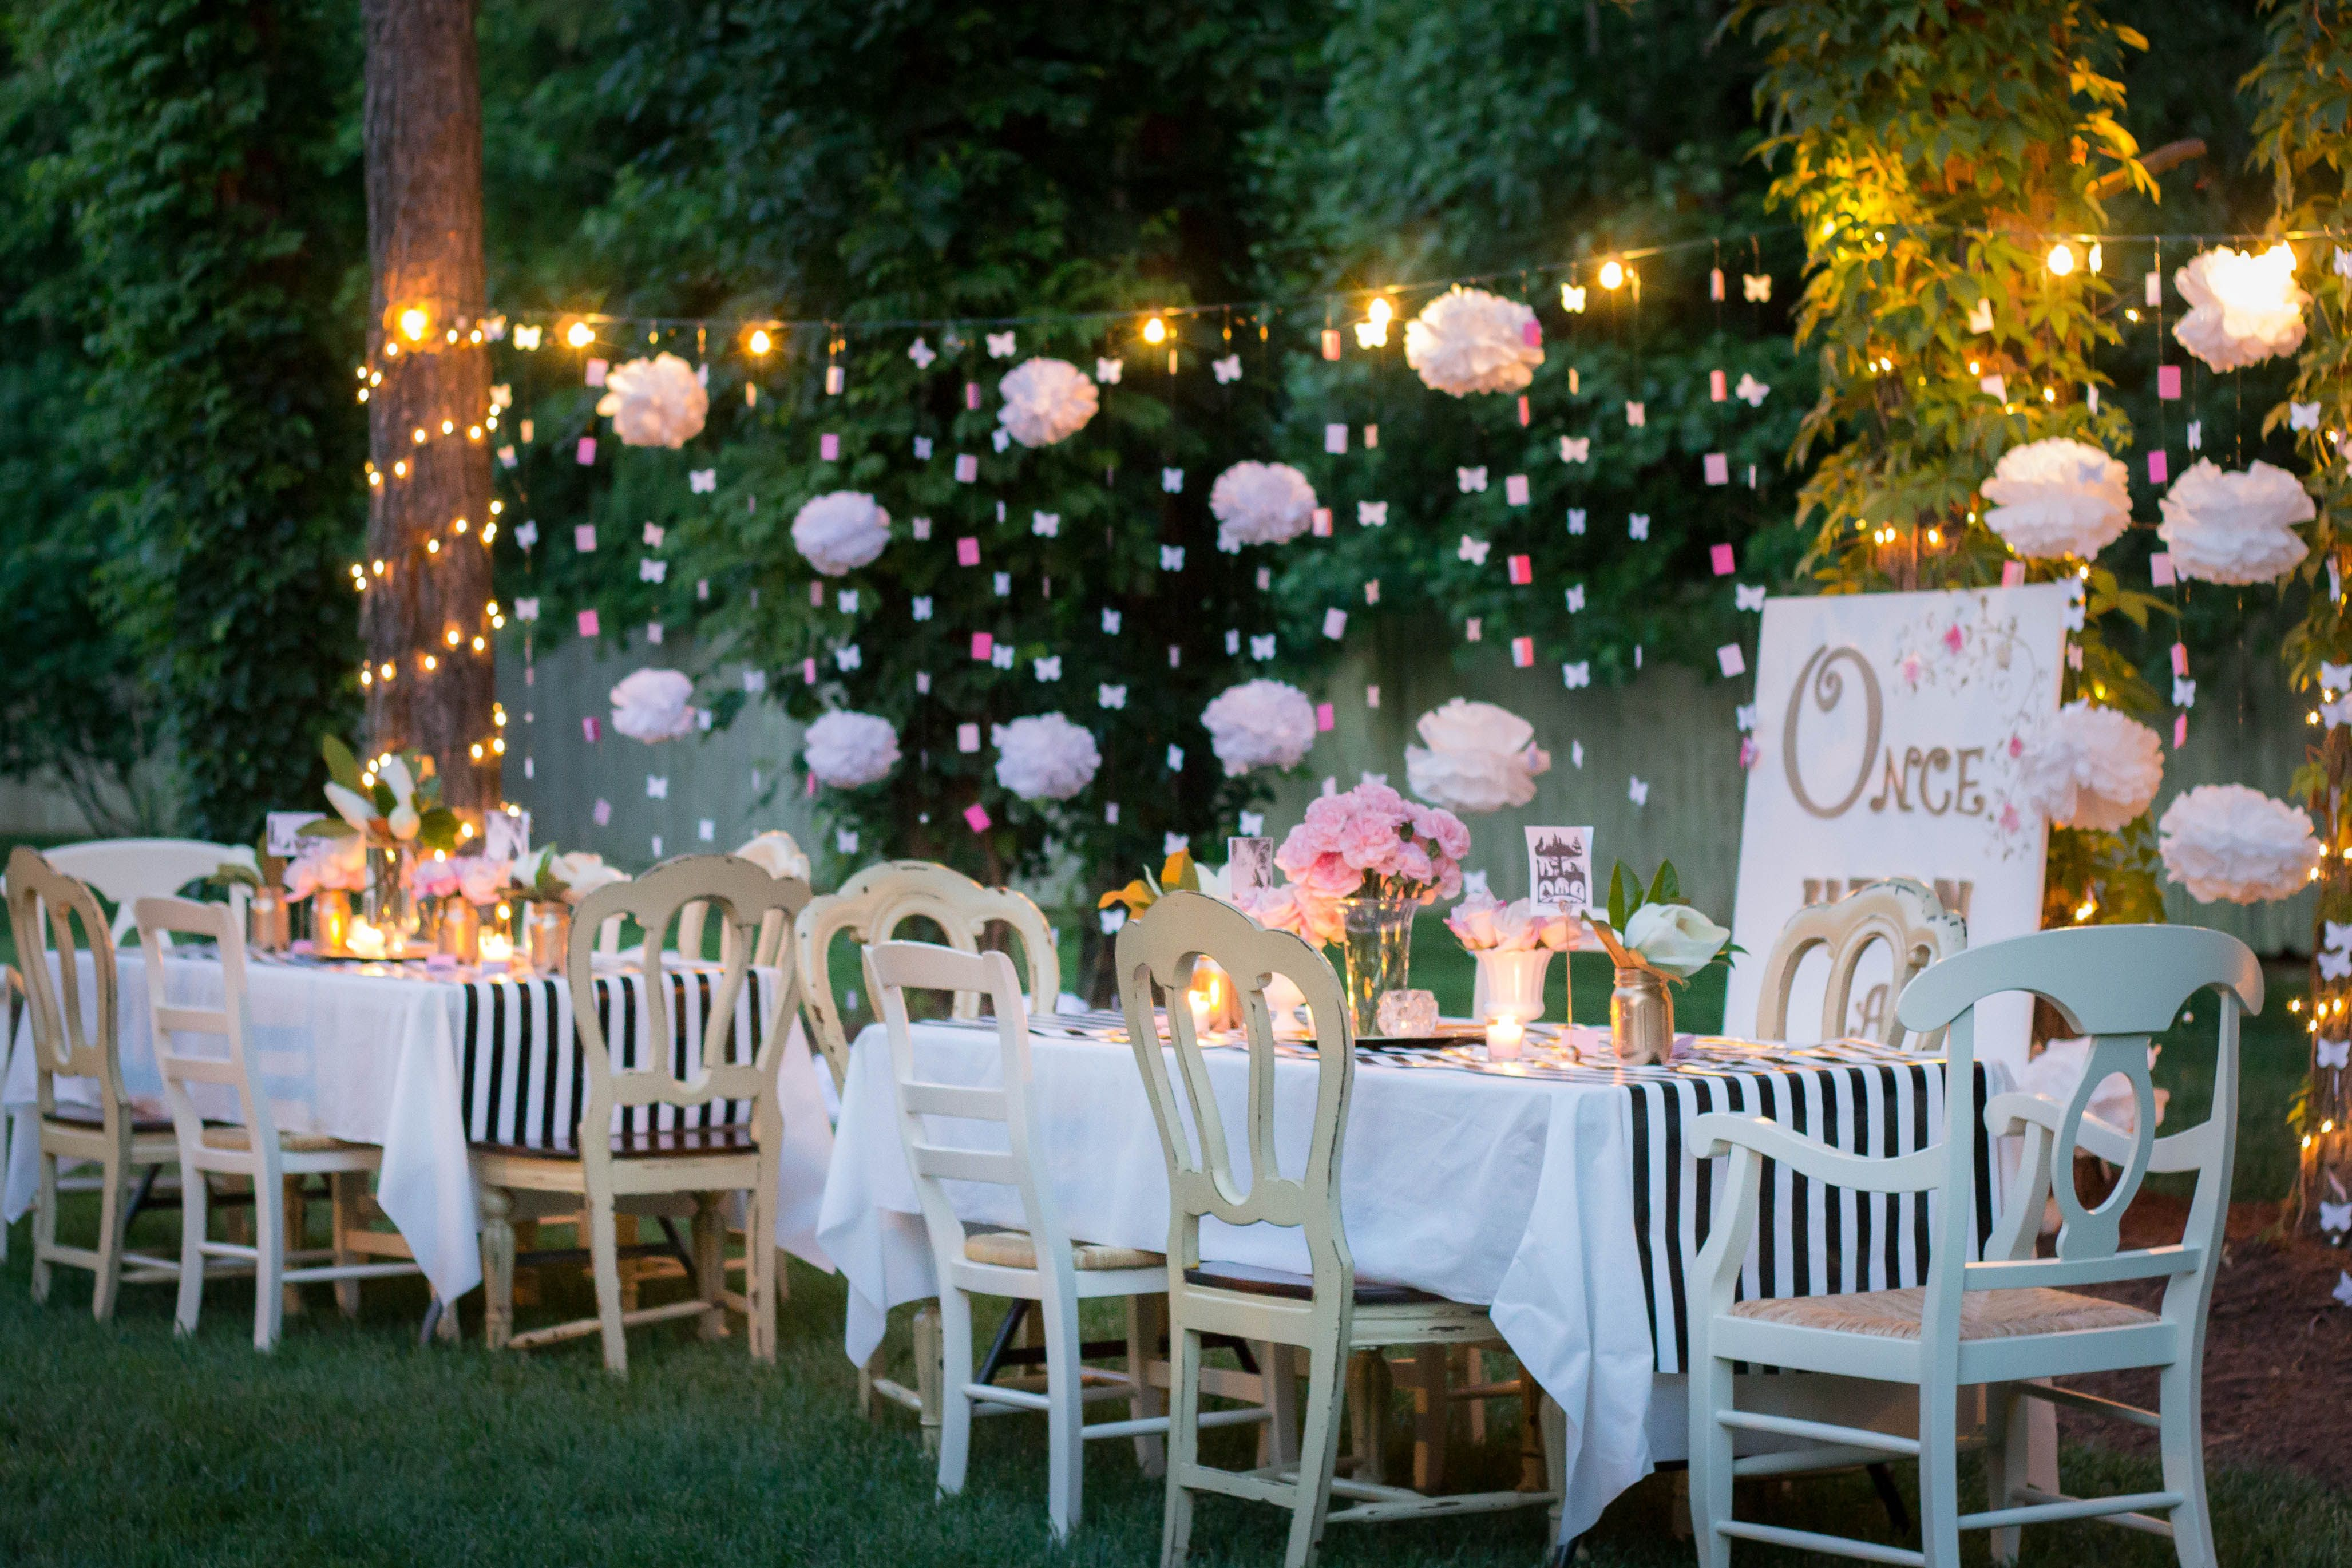 Baby Showers Outdoors ~ Whimsical storybook baby shower celebrated outside with